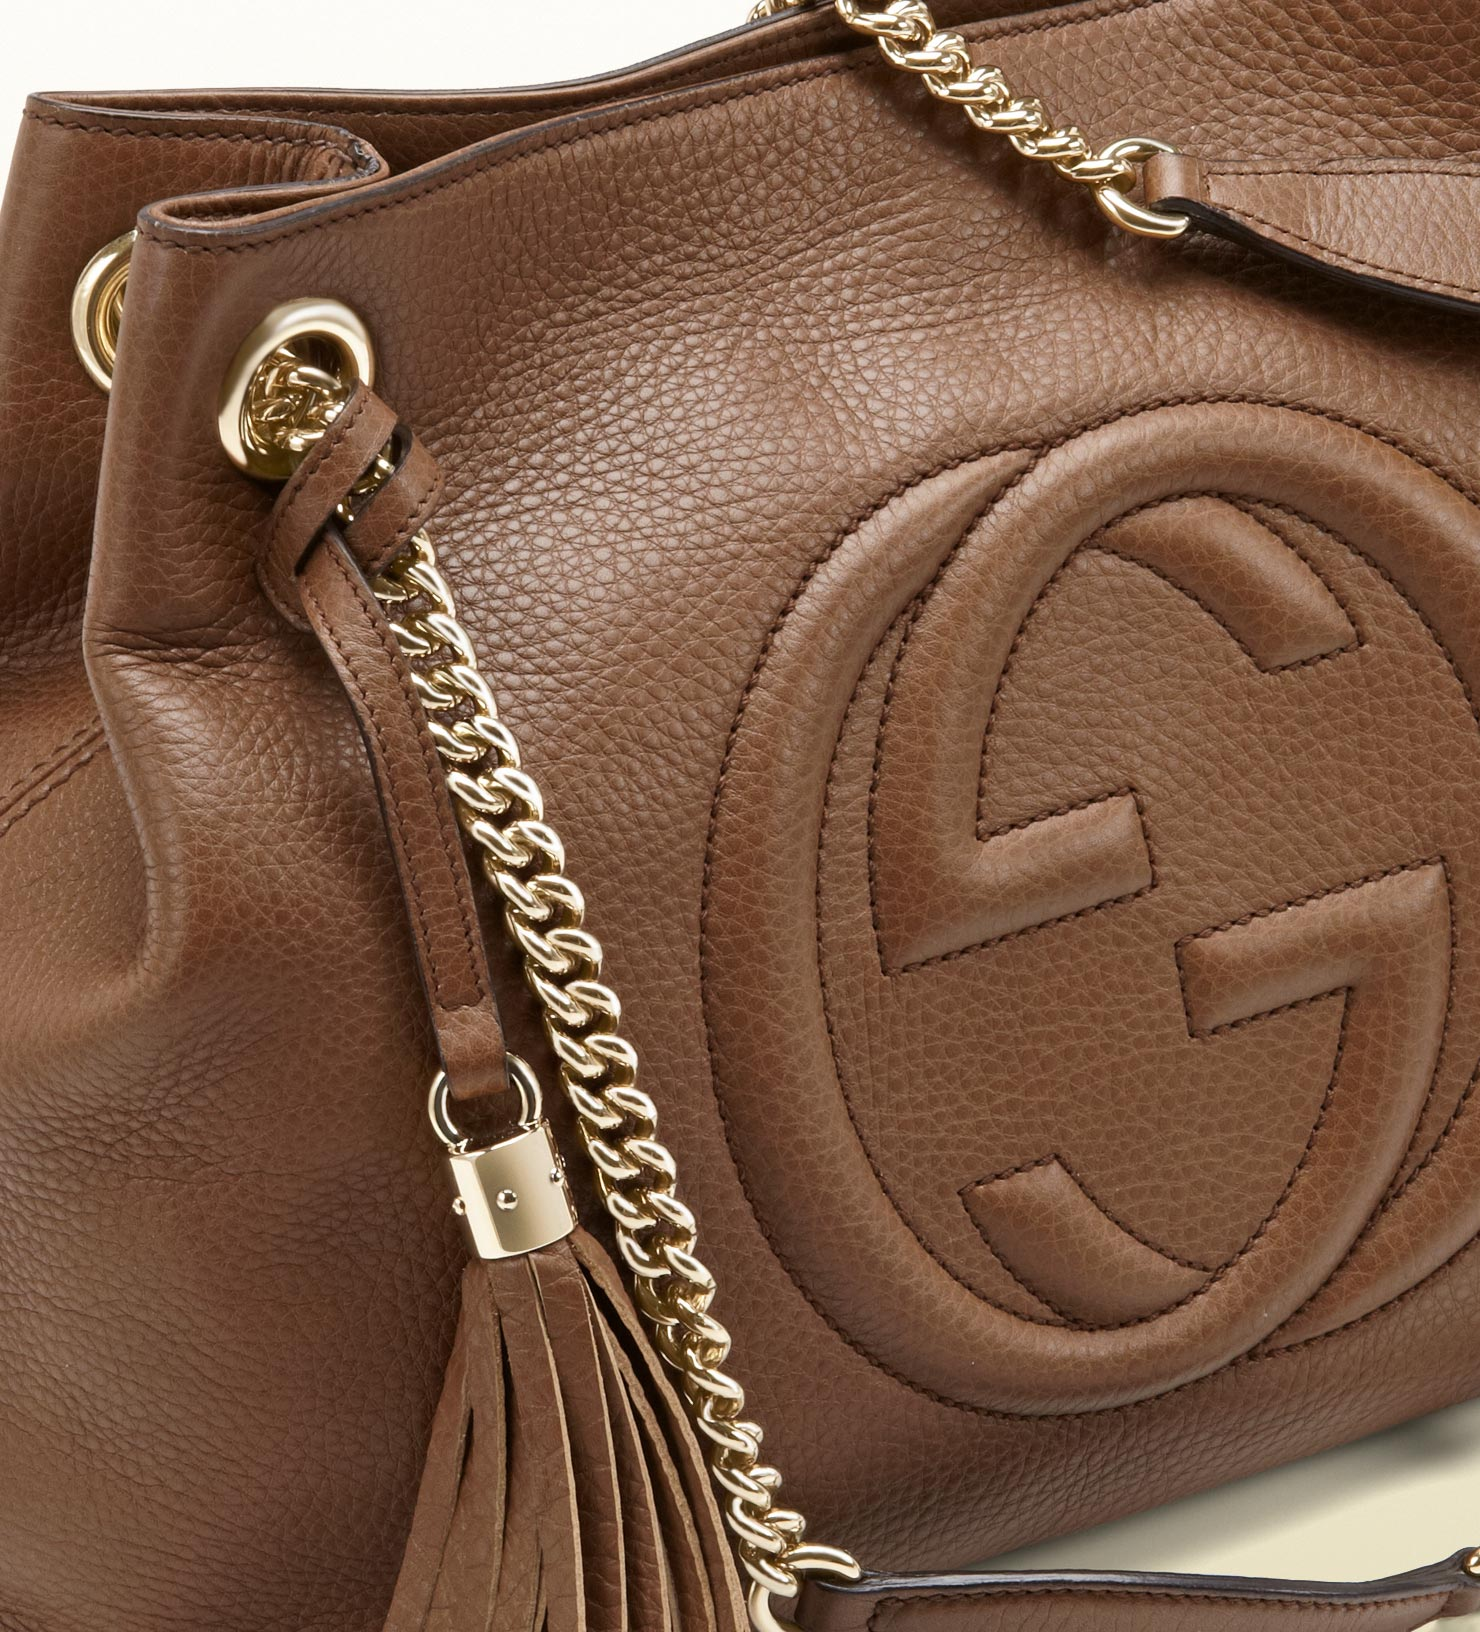 655635ad359 Lyst - Gucci Soho Leather Shoulder Bag in Brown